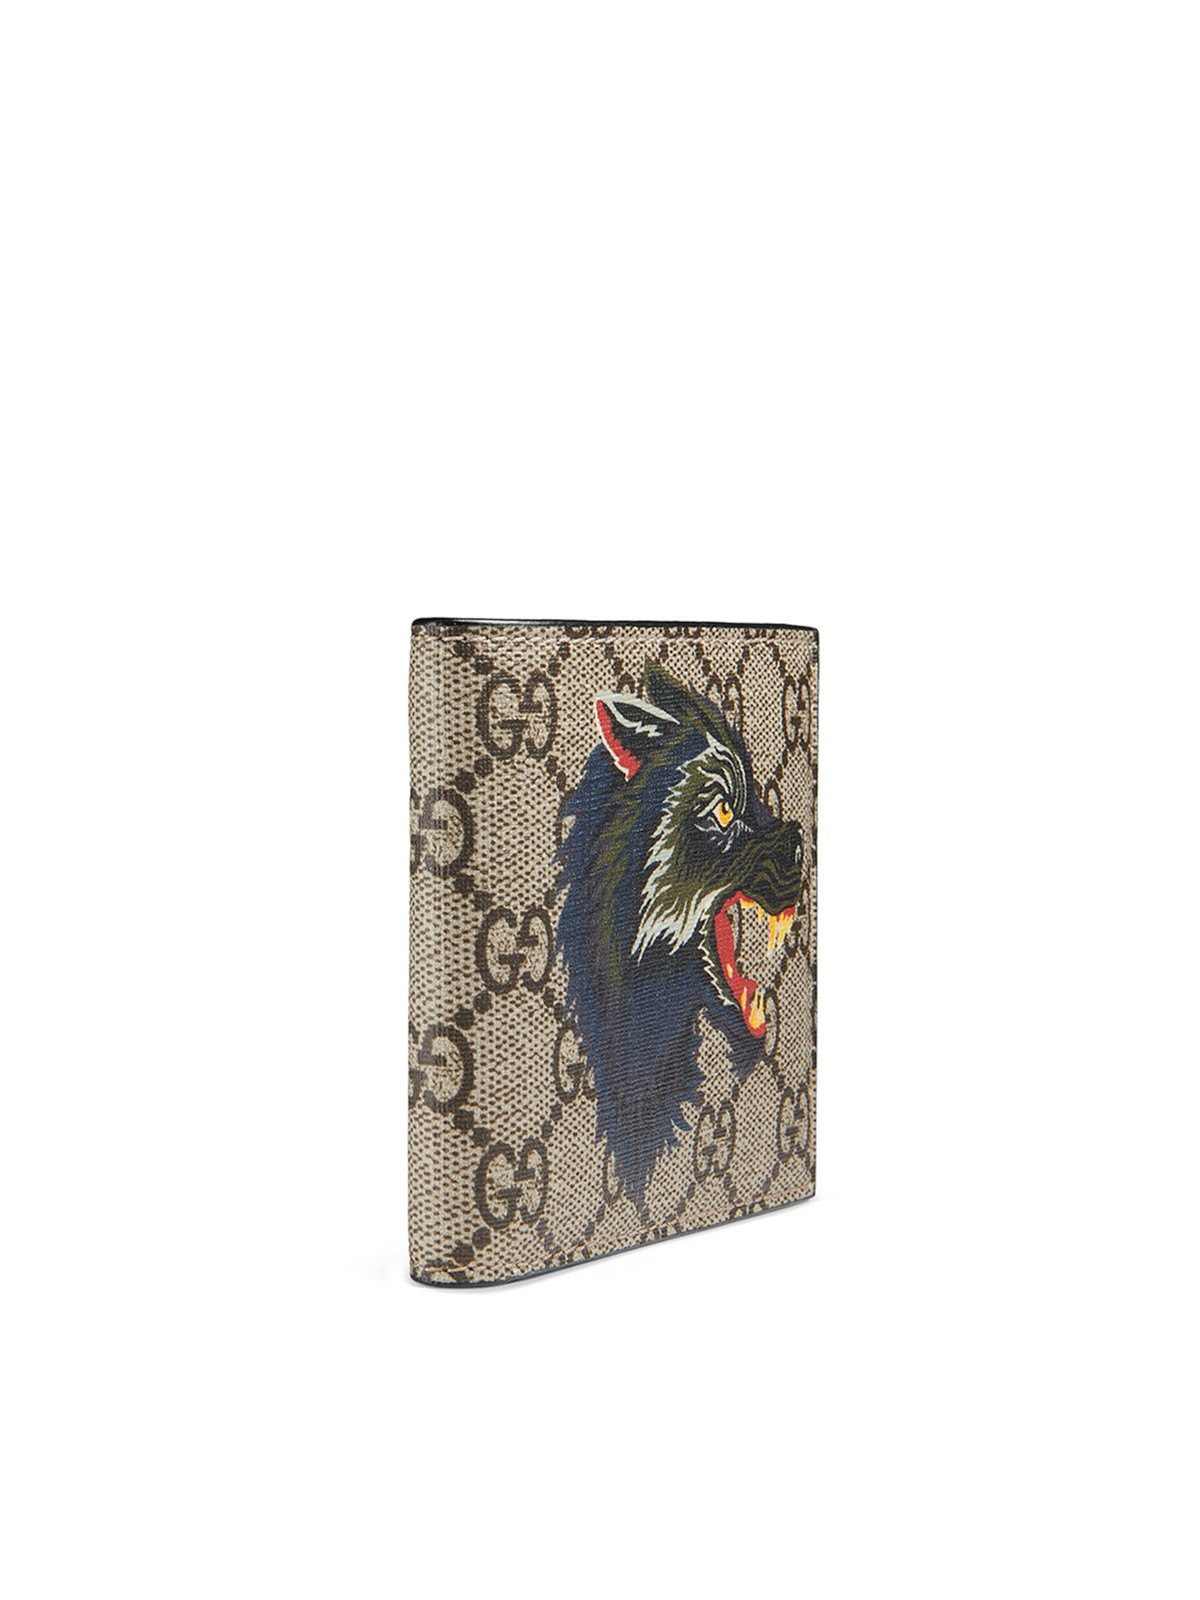 a9400af3c139 gucci WOLF PRINT WALLET available on montiboutique.com - 22300